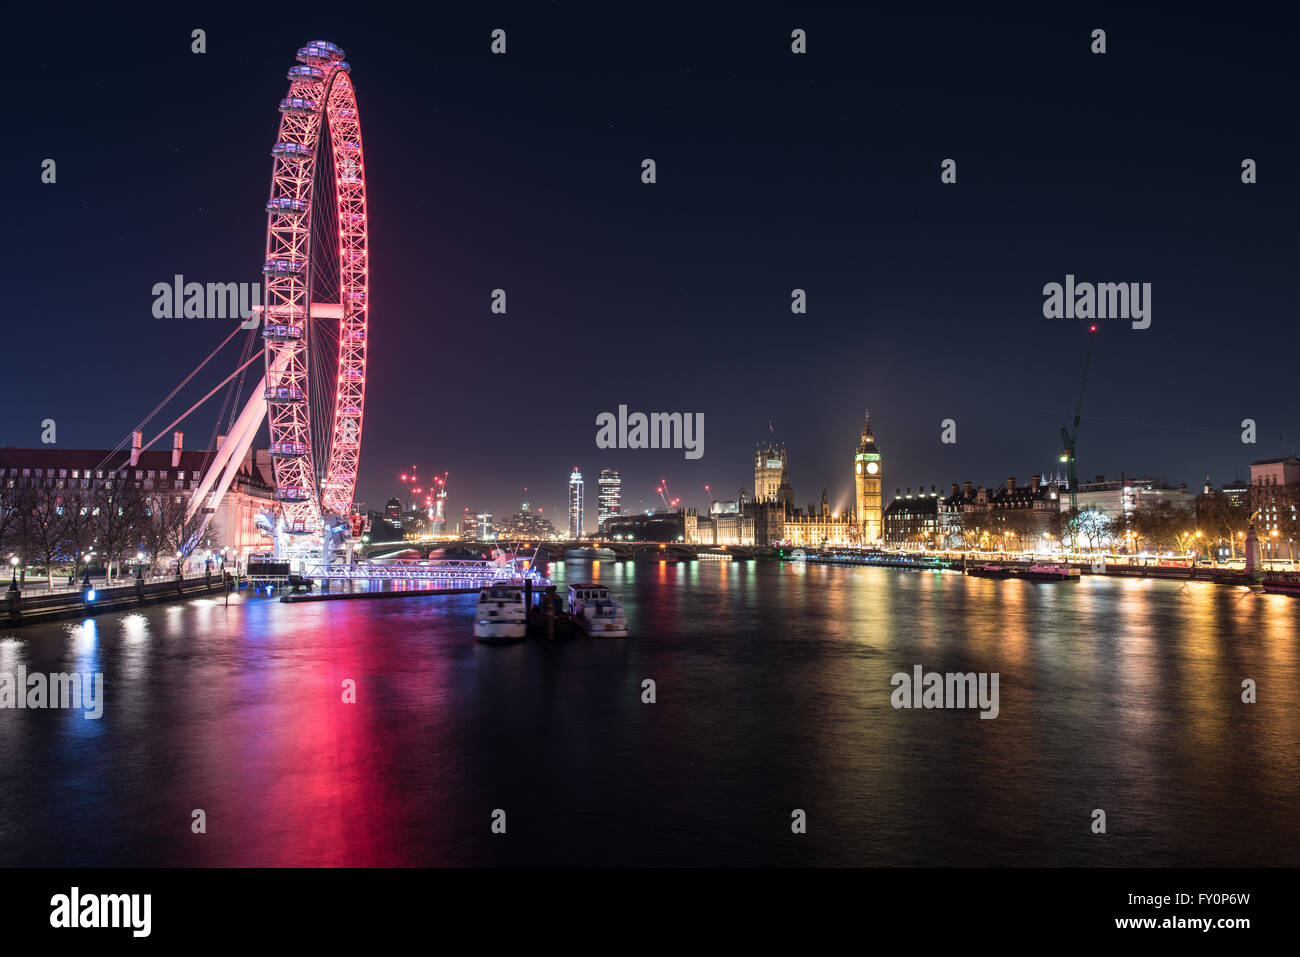 Looking south along the River Thames towards the London Eye and Houses of Parliament, London, England, United Kingdom Stock Photo